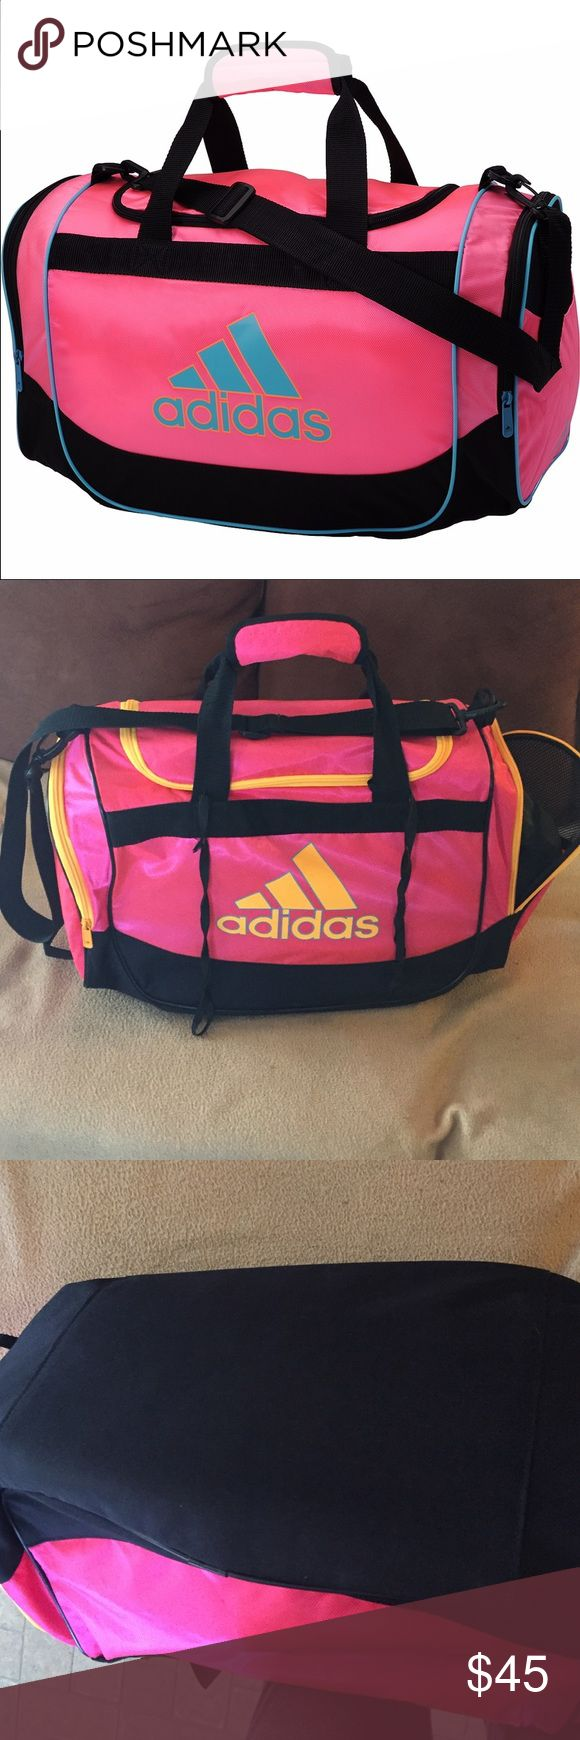 Adidas Gym Bag Dimensions Up To 30